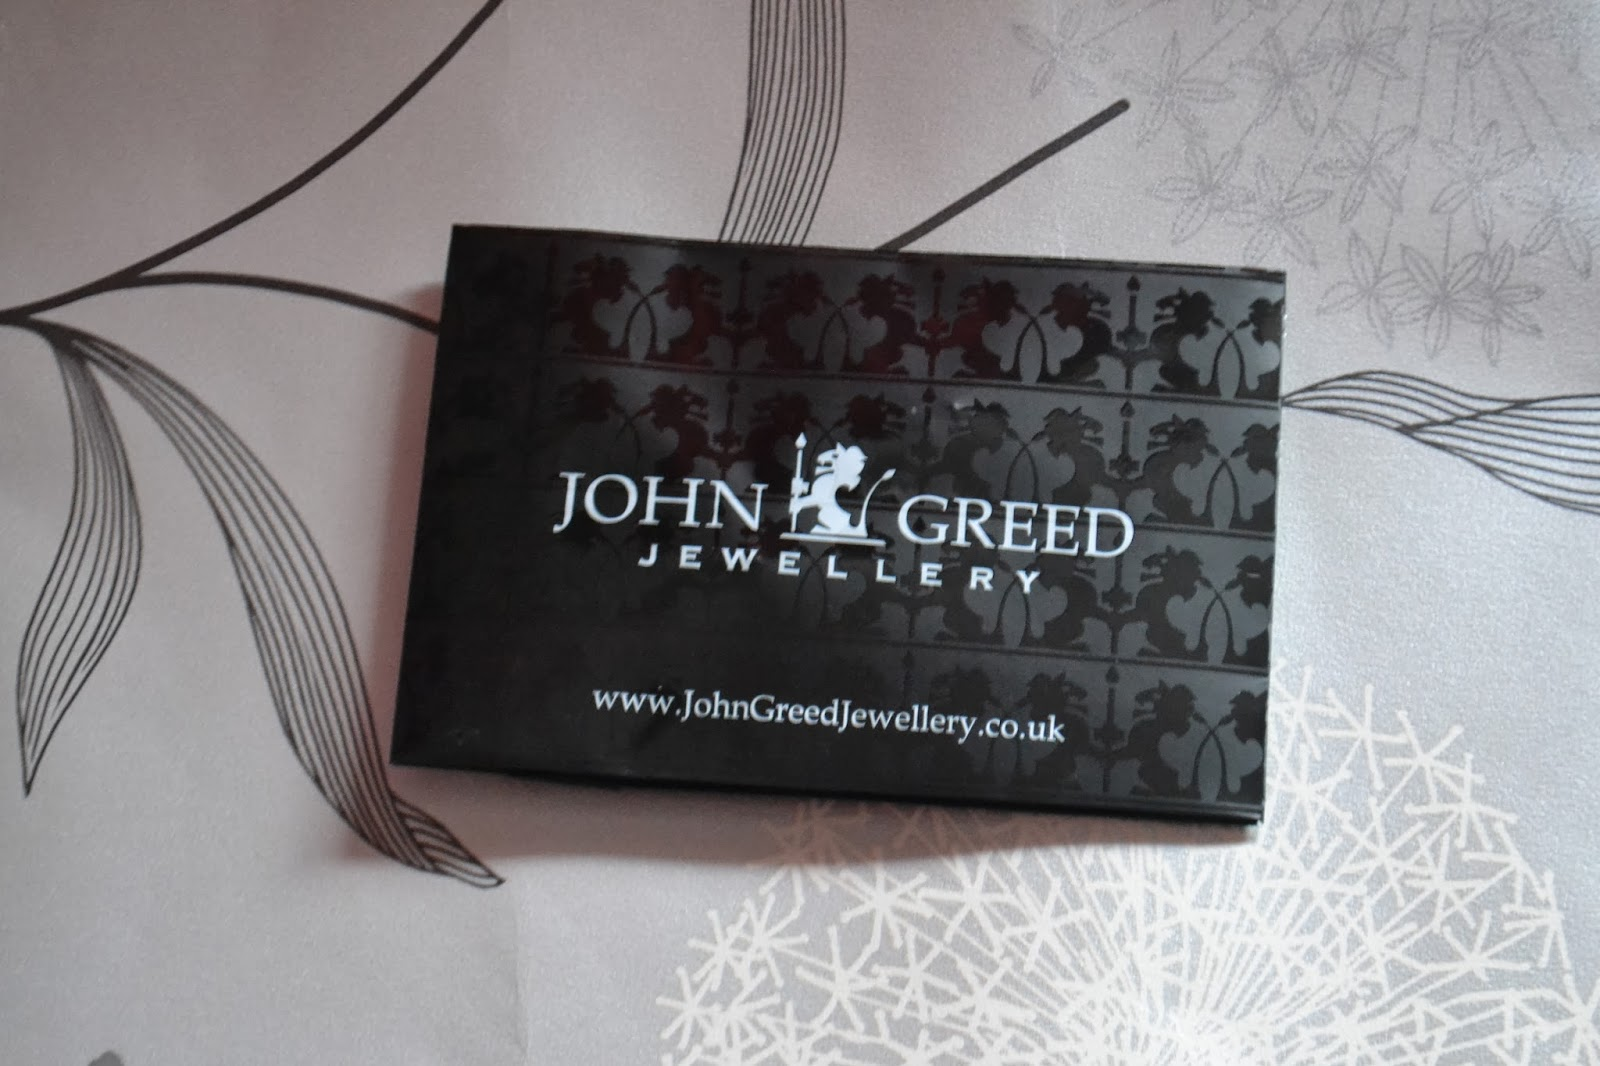 John Greed Jewellery, Forevermissvanity